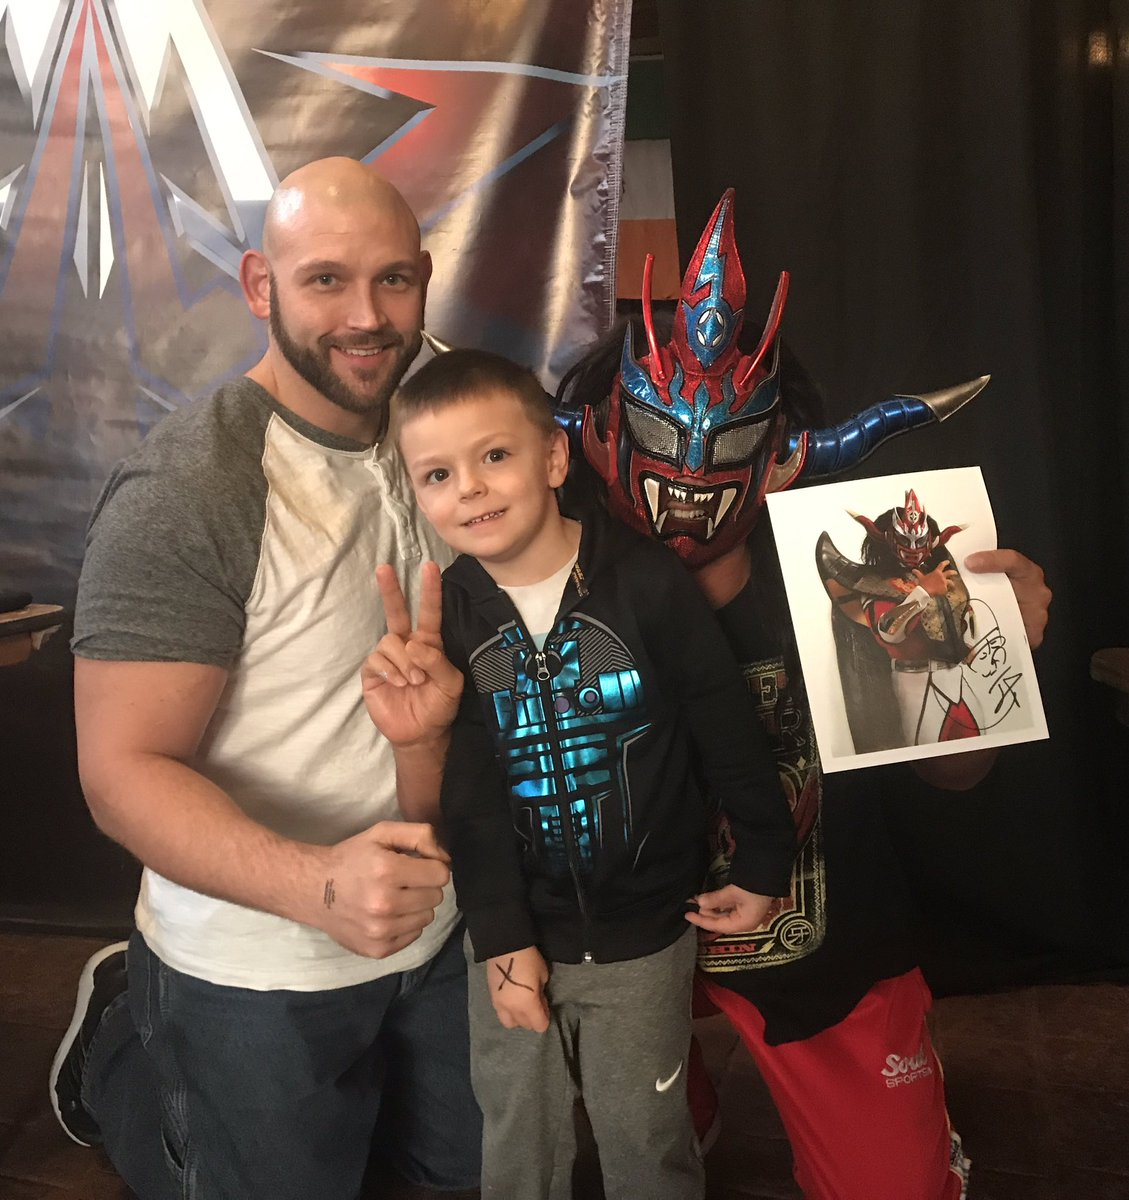 Took my son to meet Justin Liger and a few of my wrestling buddies at @AAWPro last night. Incredible show and more than worth the drive.